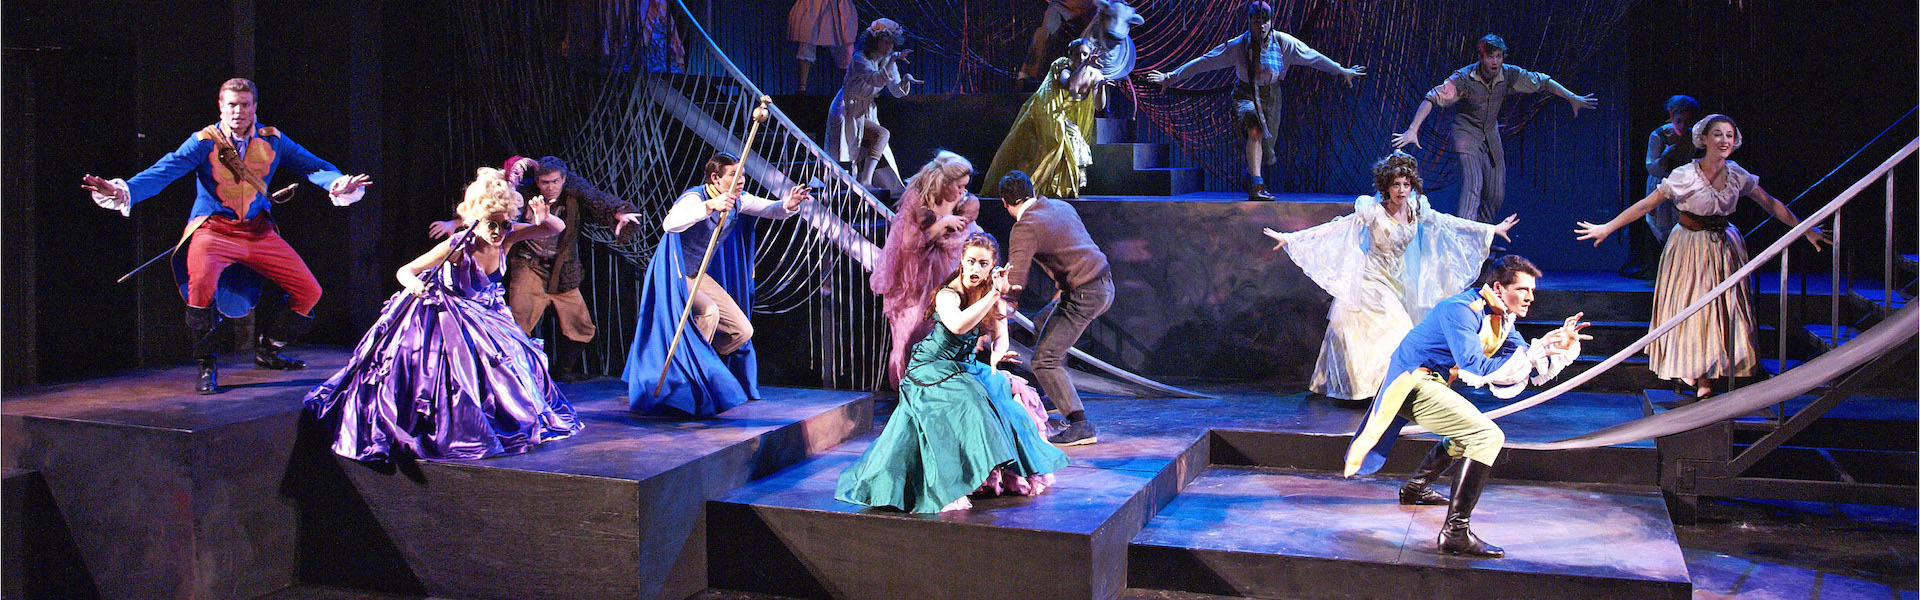 Into the woods production from WAAPA